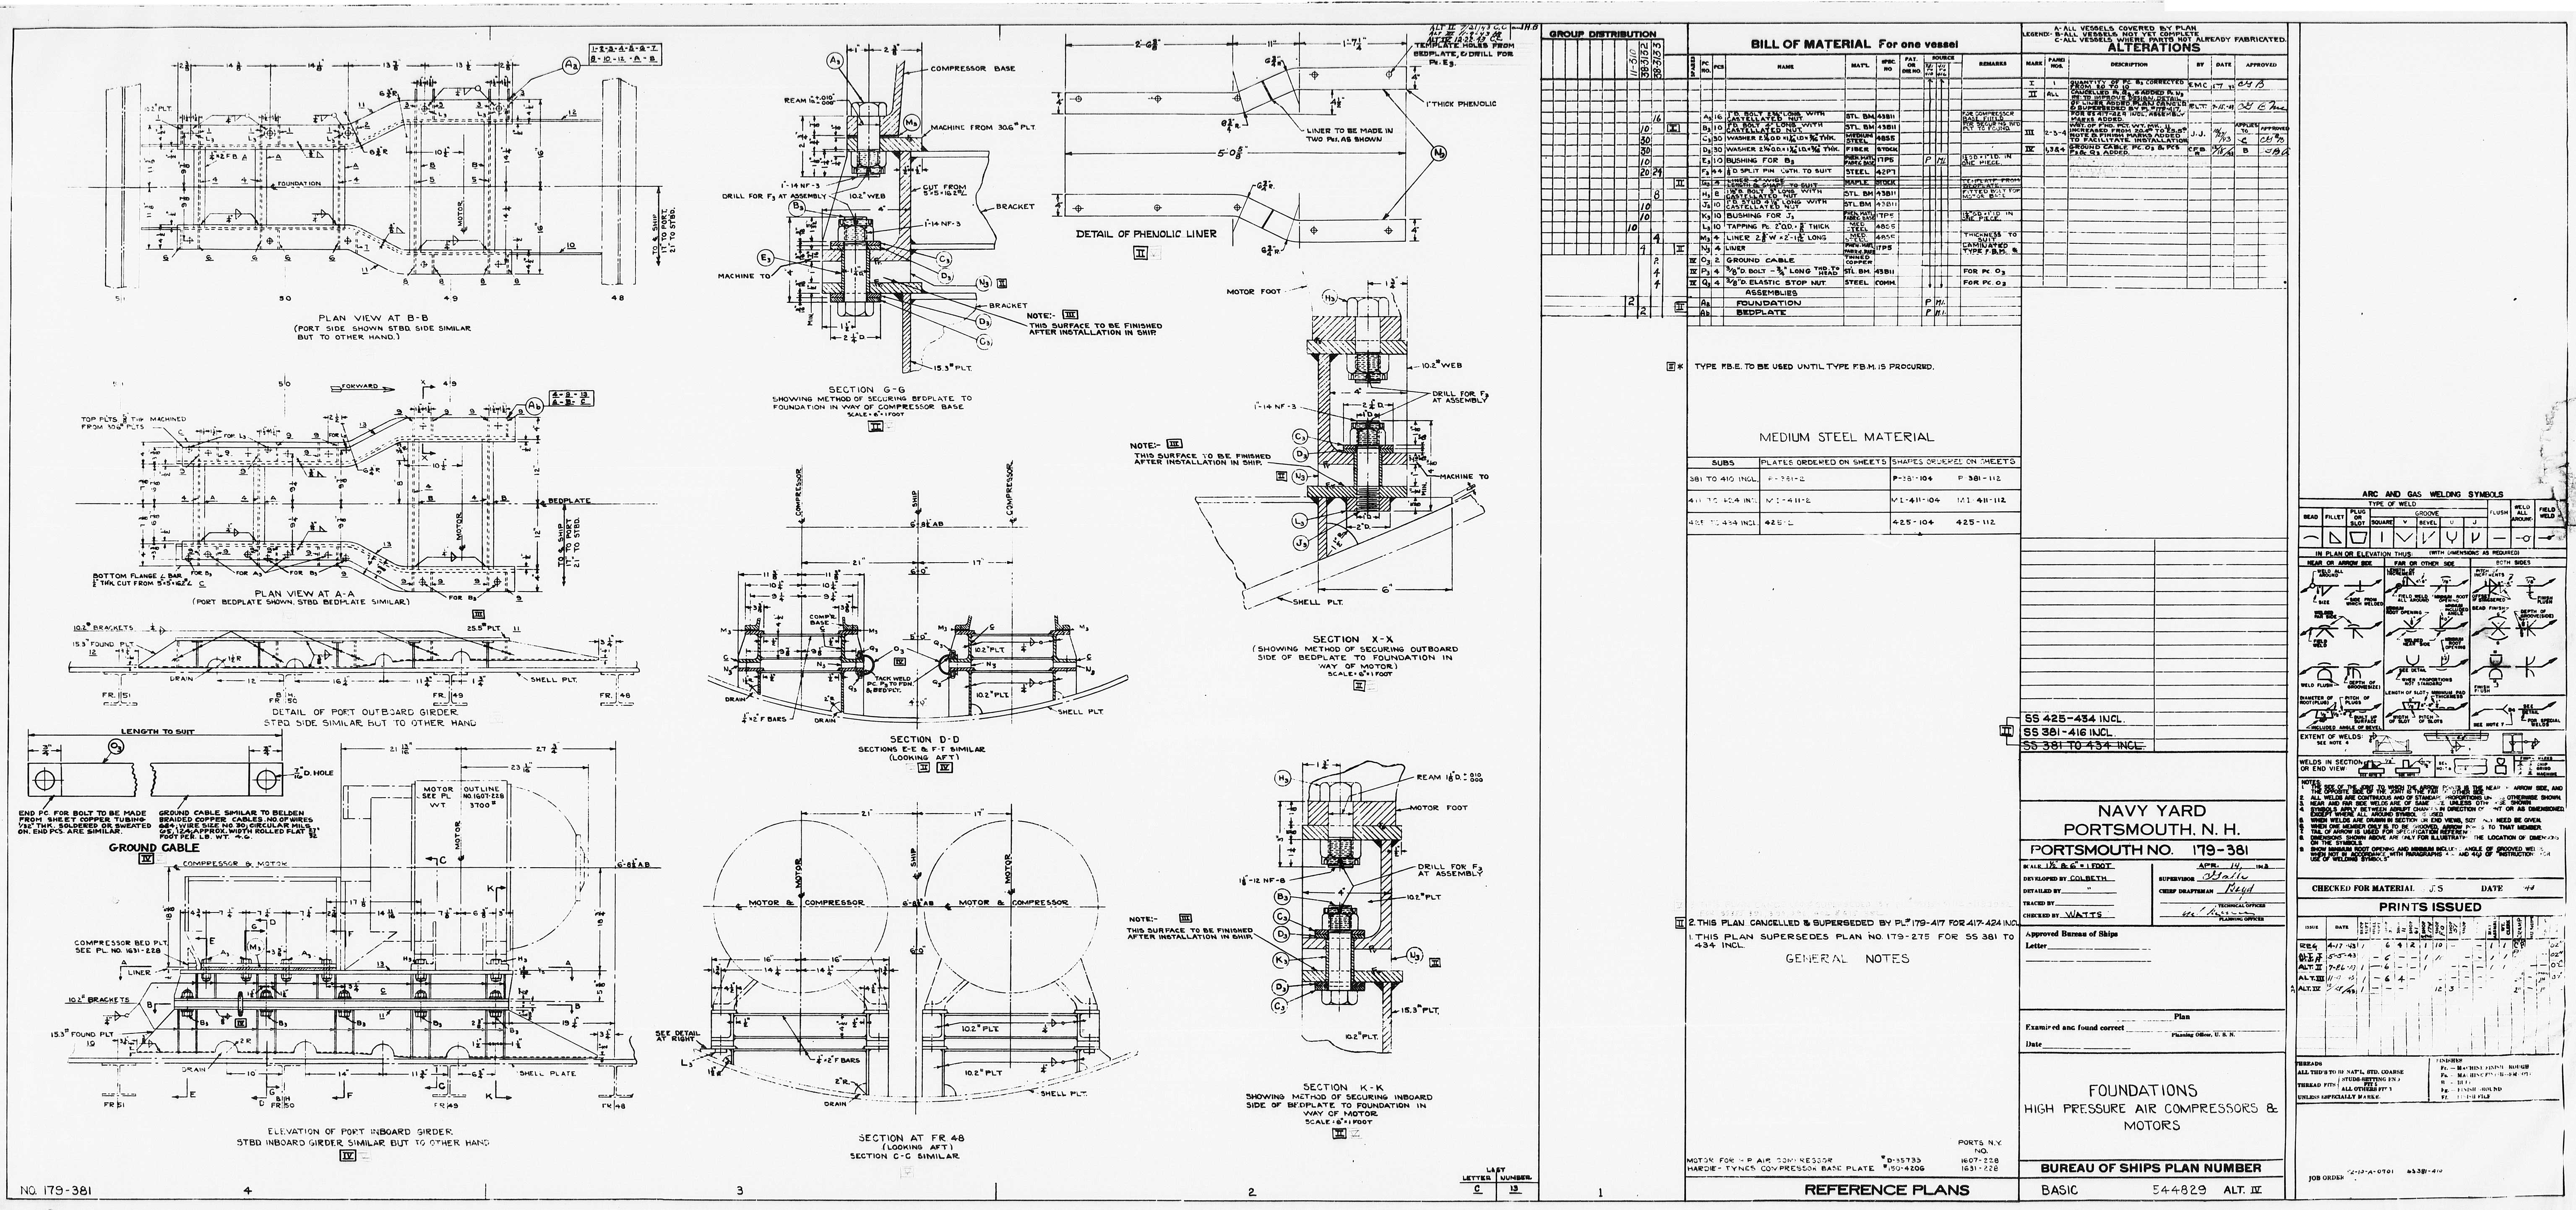 Uss Pampanito High Pressure Air Compressor Drawings Schematic Hp Foundations Basic544829 32429 11 0136